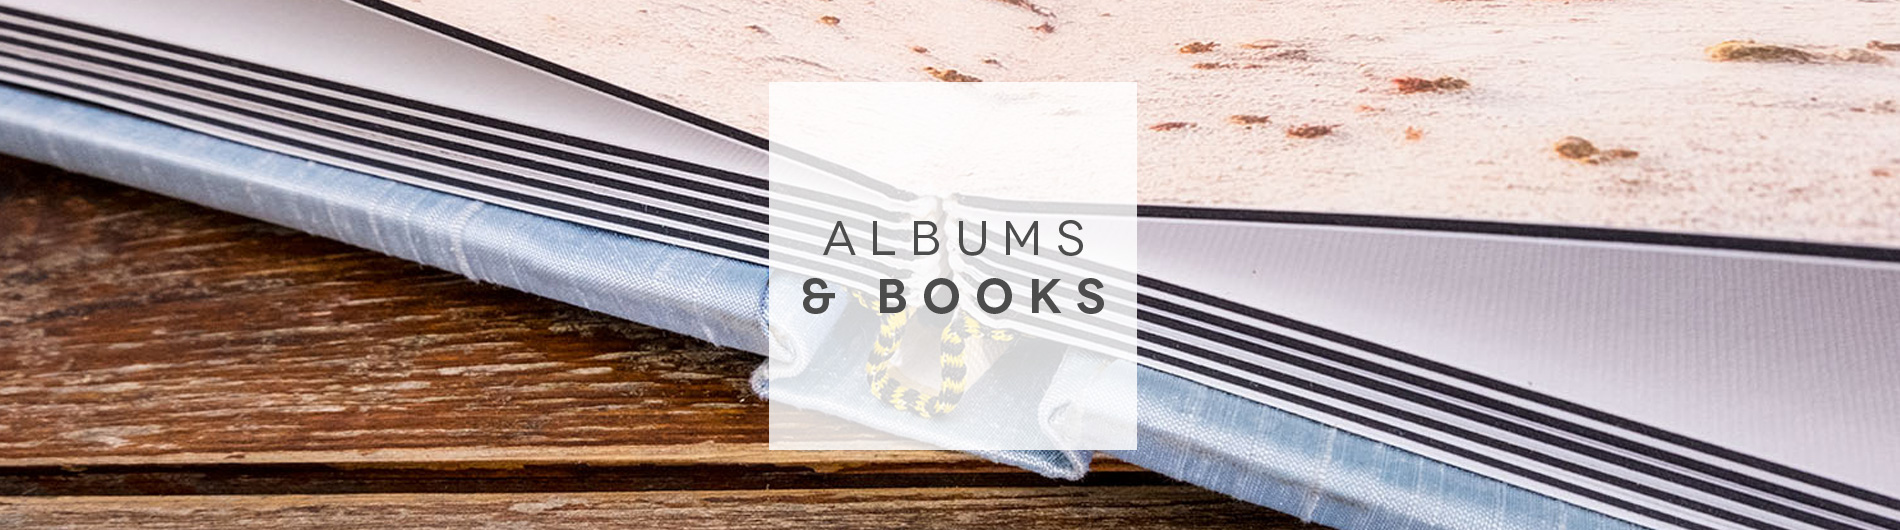 photo albums and books